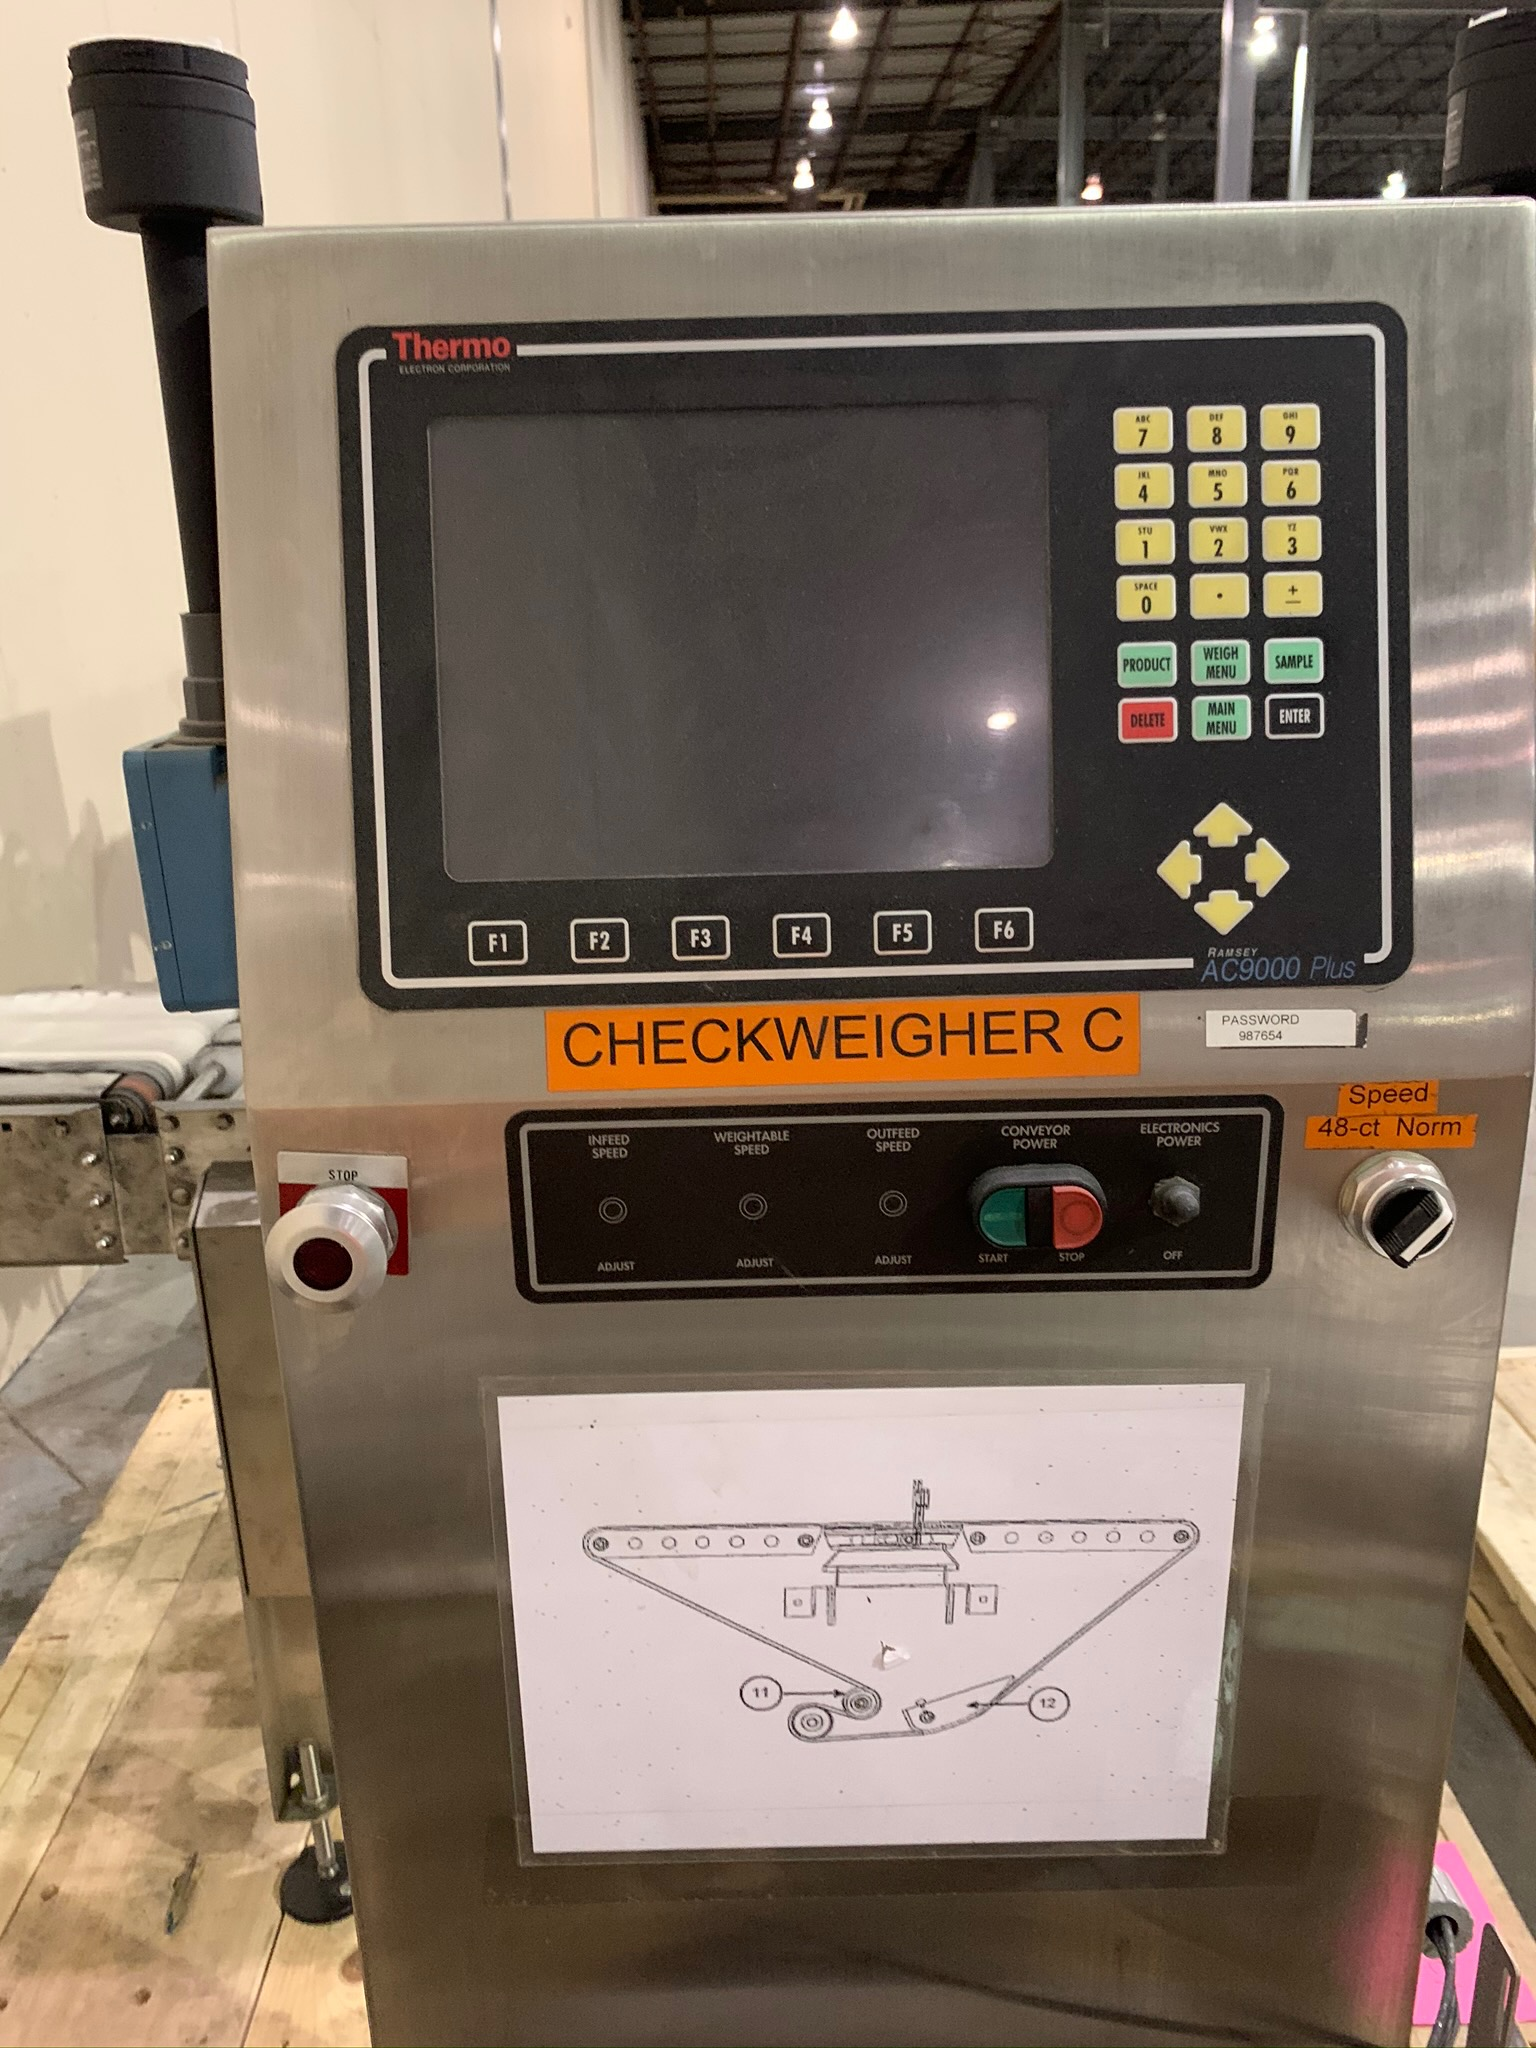 Thermo Scientific Check Weigher Model AC9000(p) -8120 S/N 08082736 (Rigging Fee - $50) - Image 2 of 4